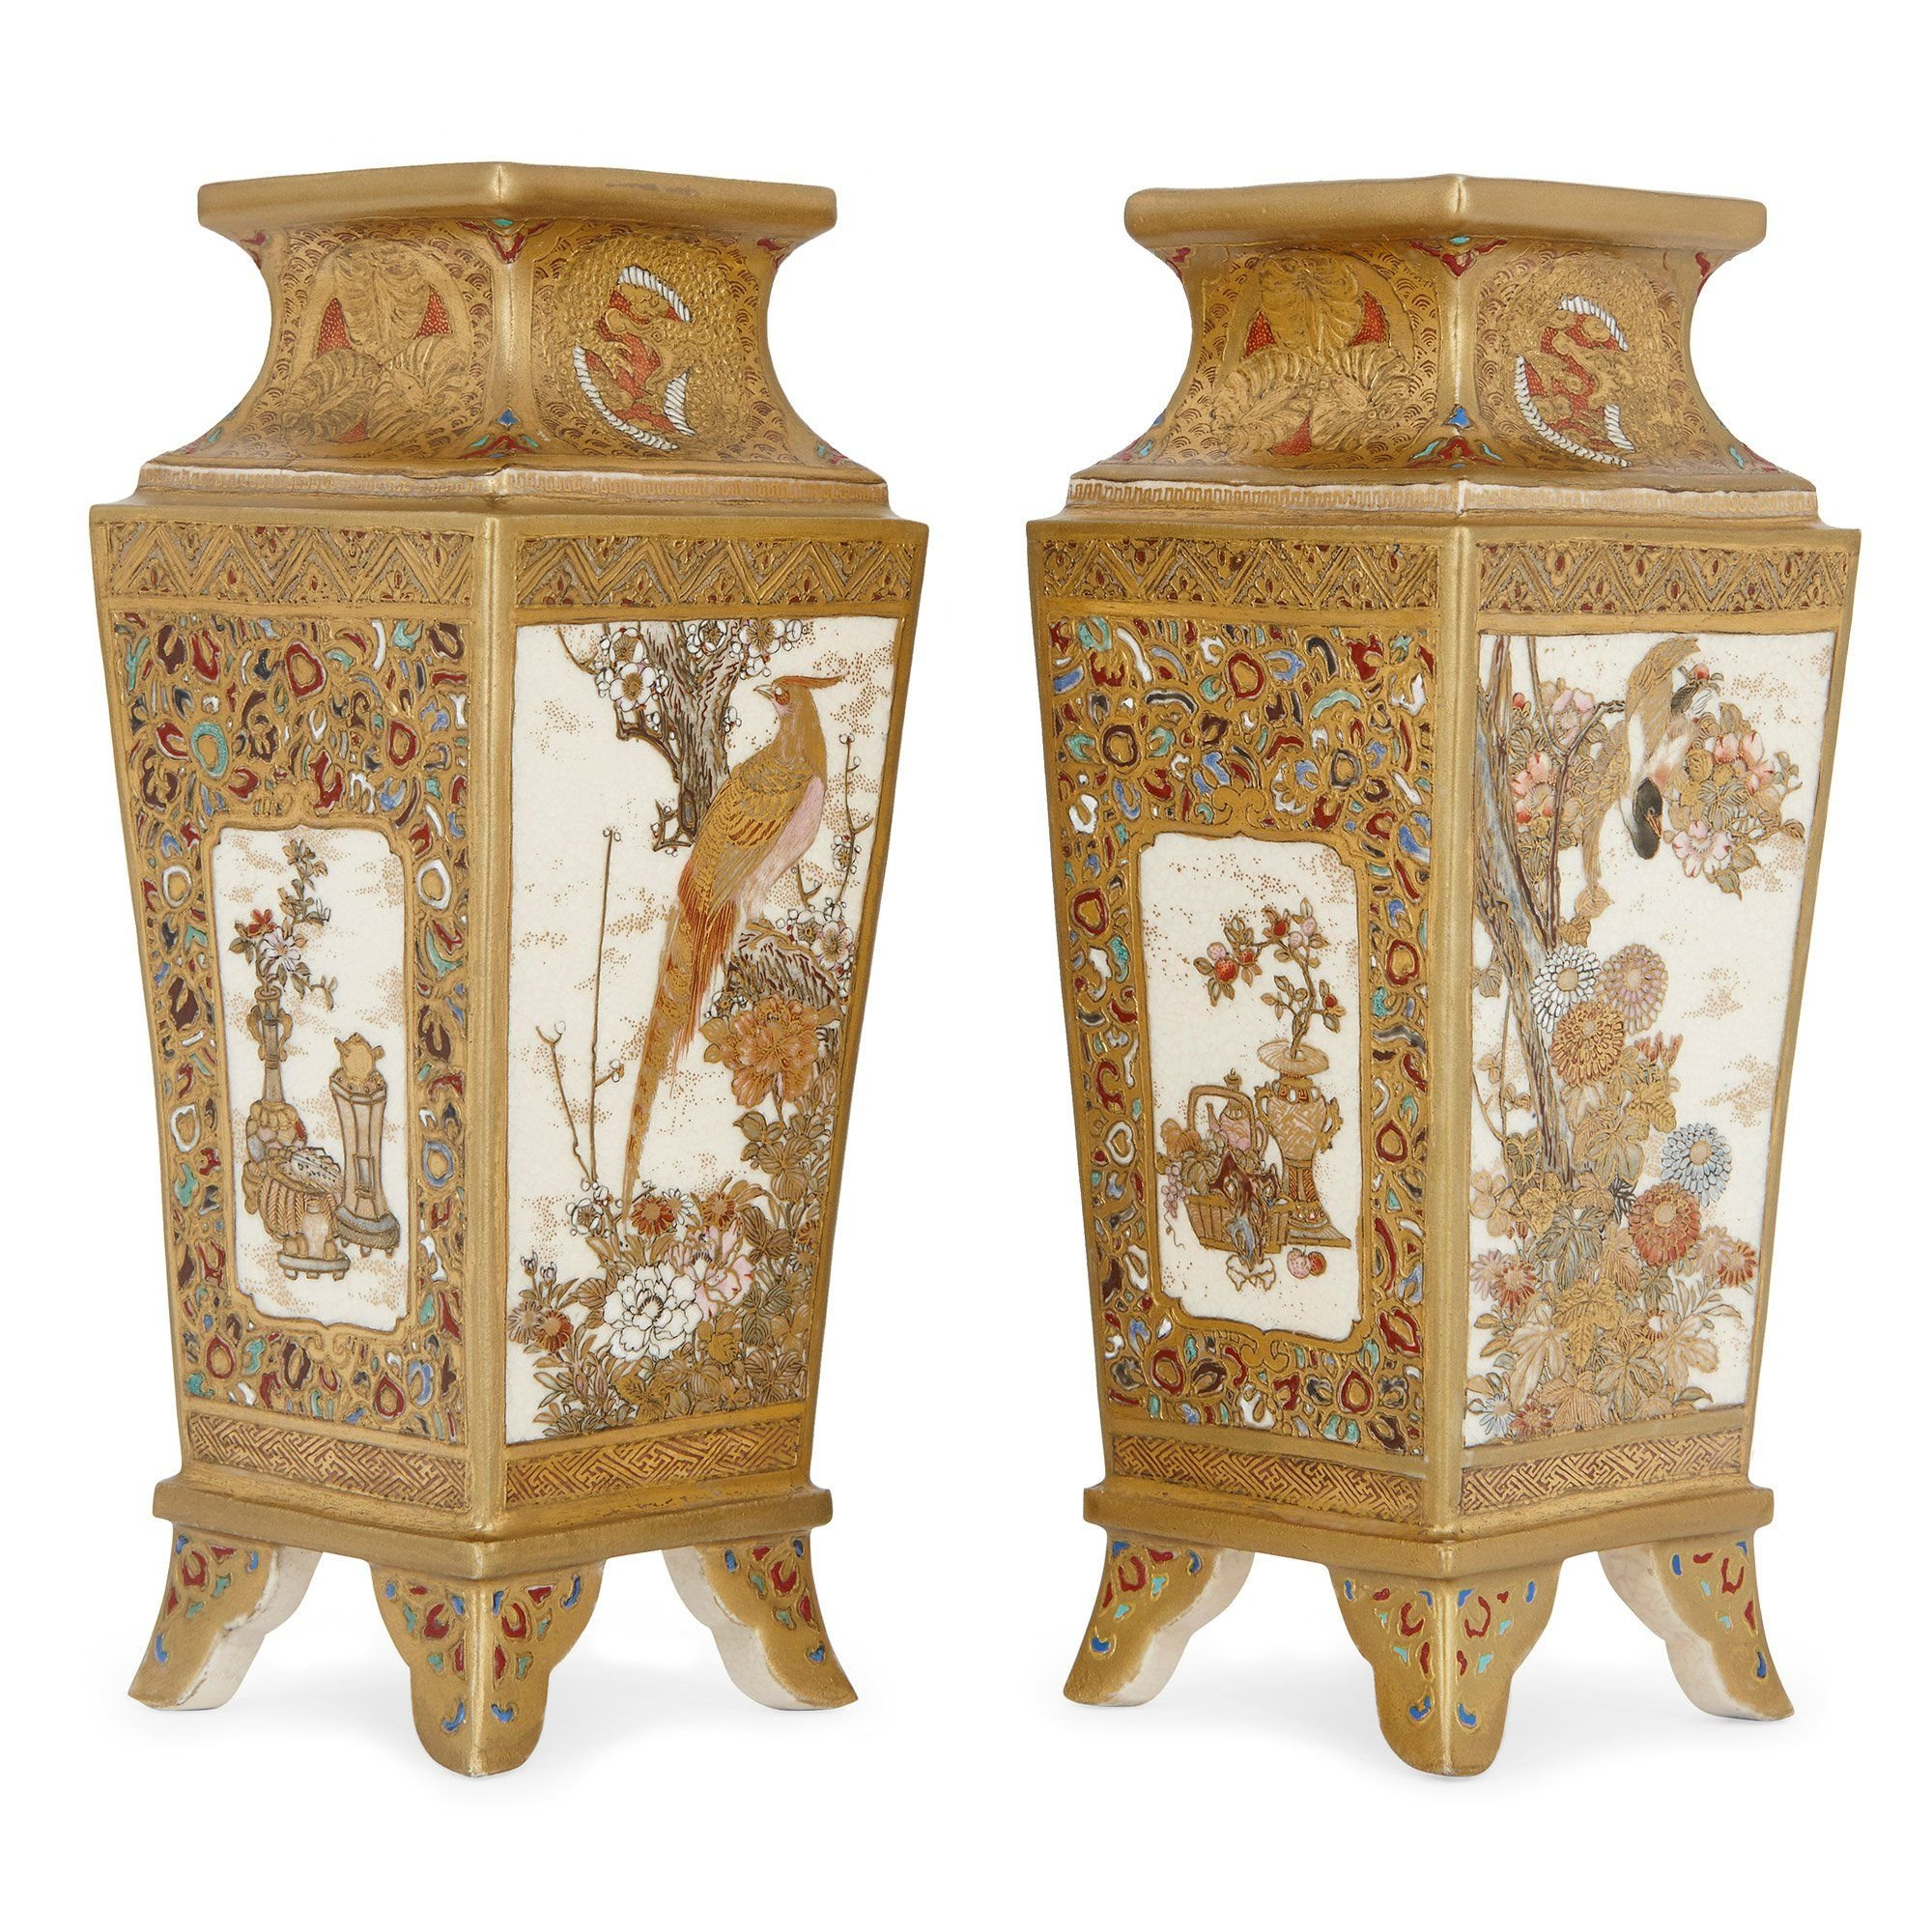 Pair Of Japanese Meiji Period Satsuma Porcelain Vases